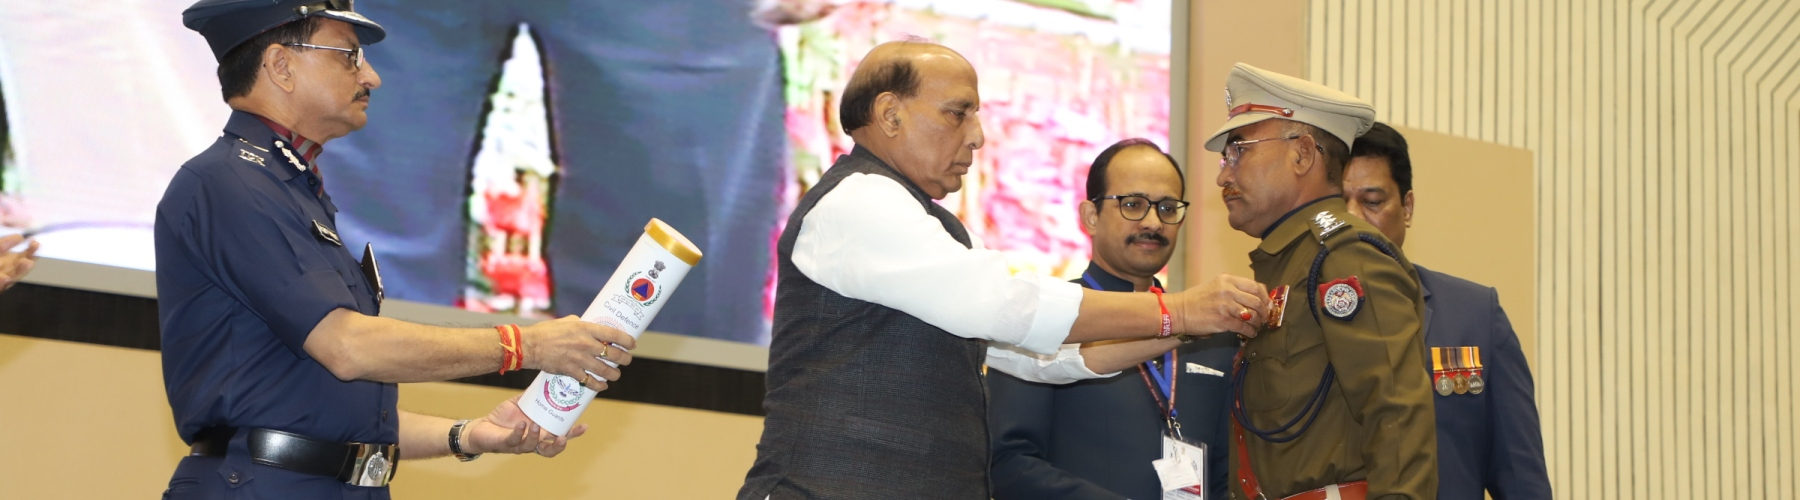 Union Home Minister, Shri Rajnath Singh  giving away Medals at the Medal Investiture Ceremony of President(s) Fire Service,Home Guards & Civil Defence. DG, NDRF, Civil Defence,  and Home Guards, Shri Sanjay Kumar and senior officers of MHA are also seen.